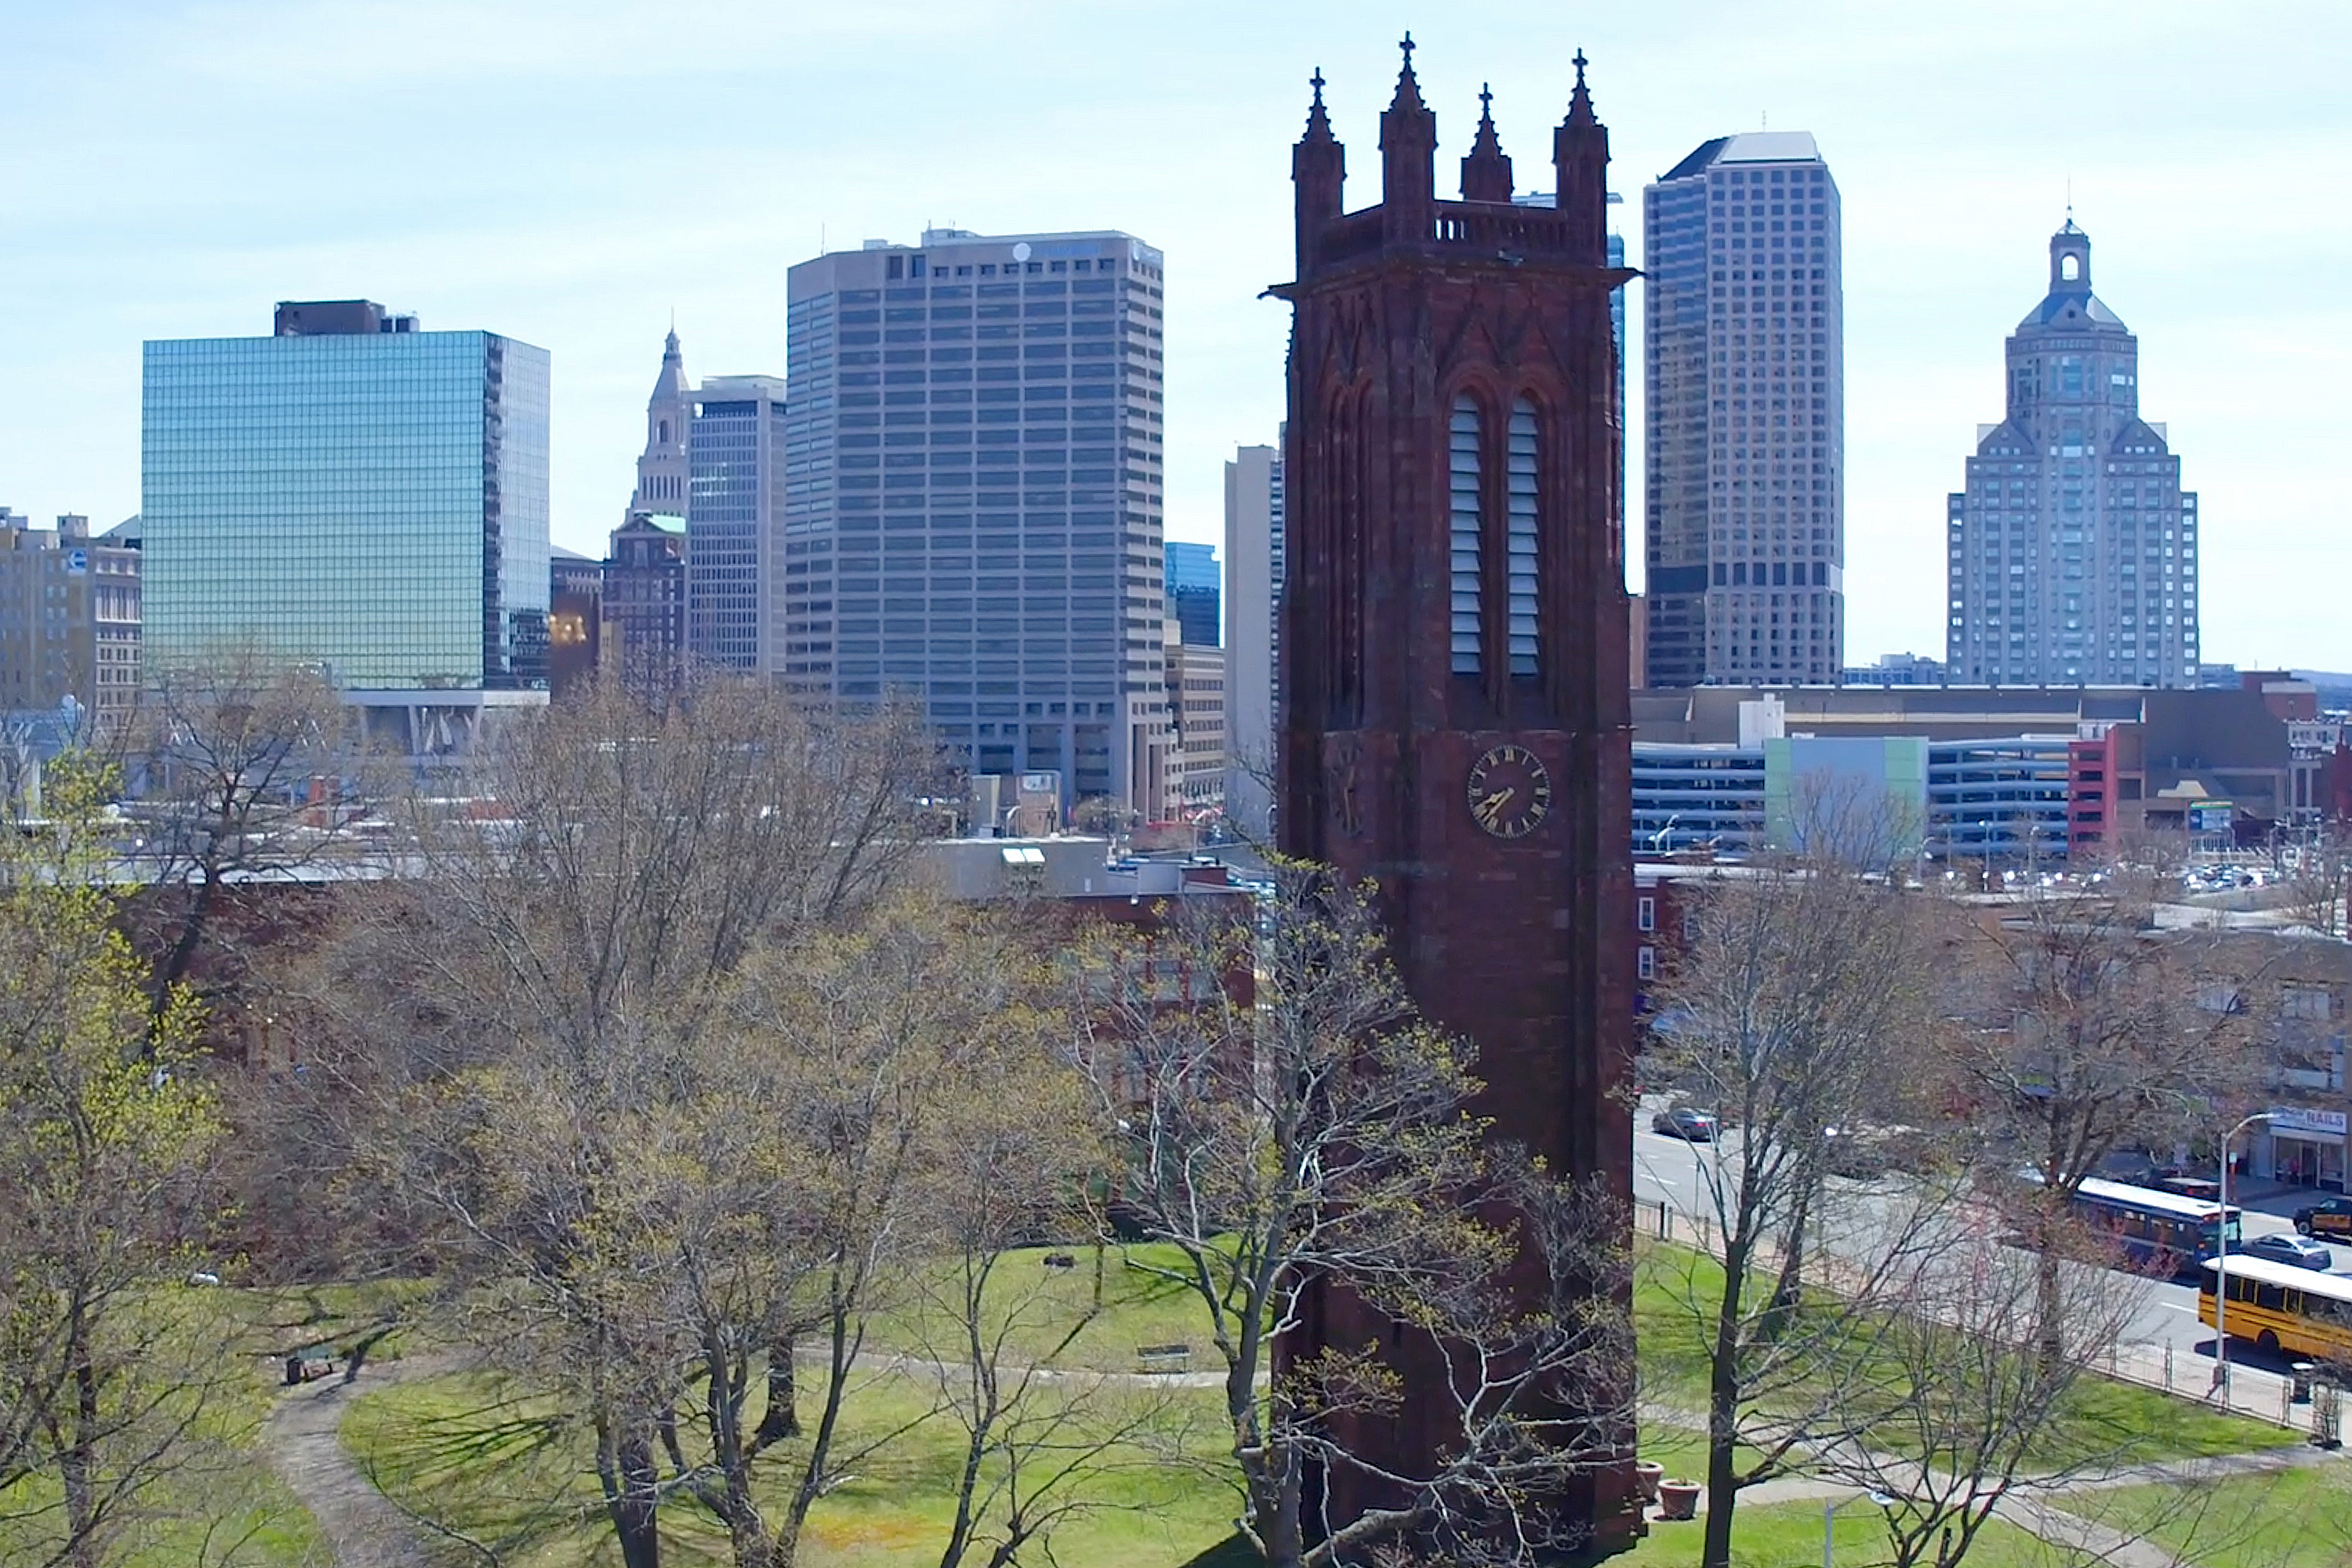 The Keney Memorial Clock Tower in Hartford. (Tom Rettig/UConn Photo)